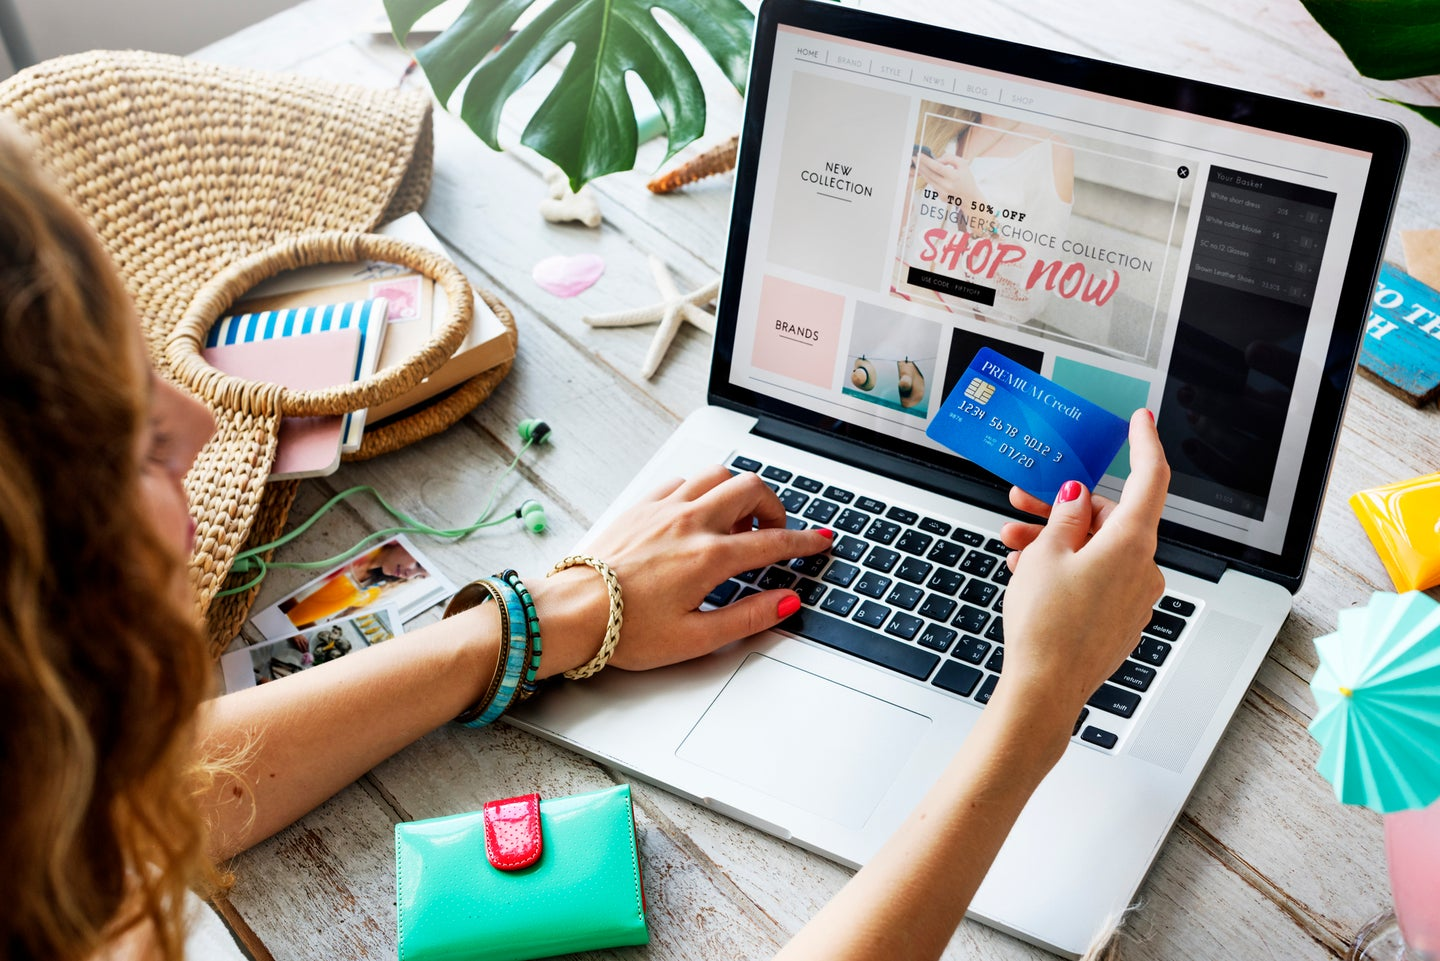 Person online shopping and holding credit card in front of computer on